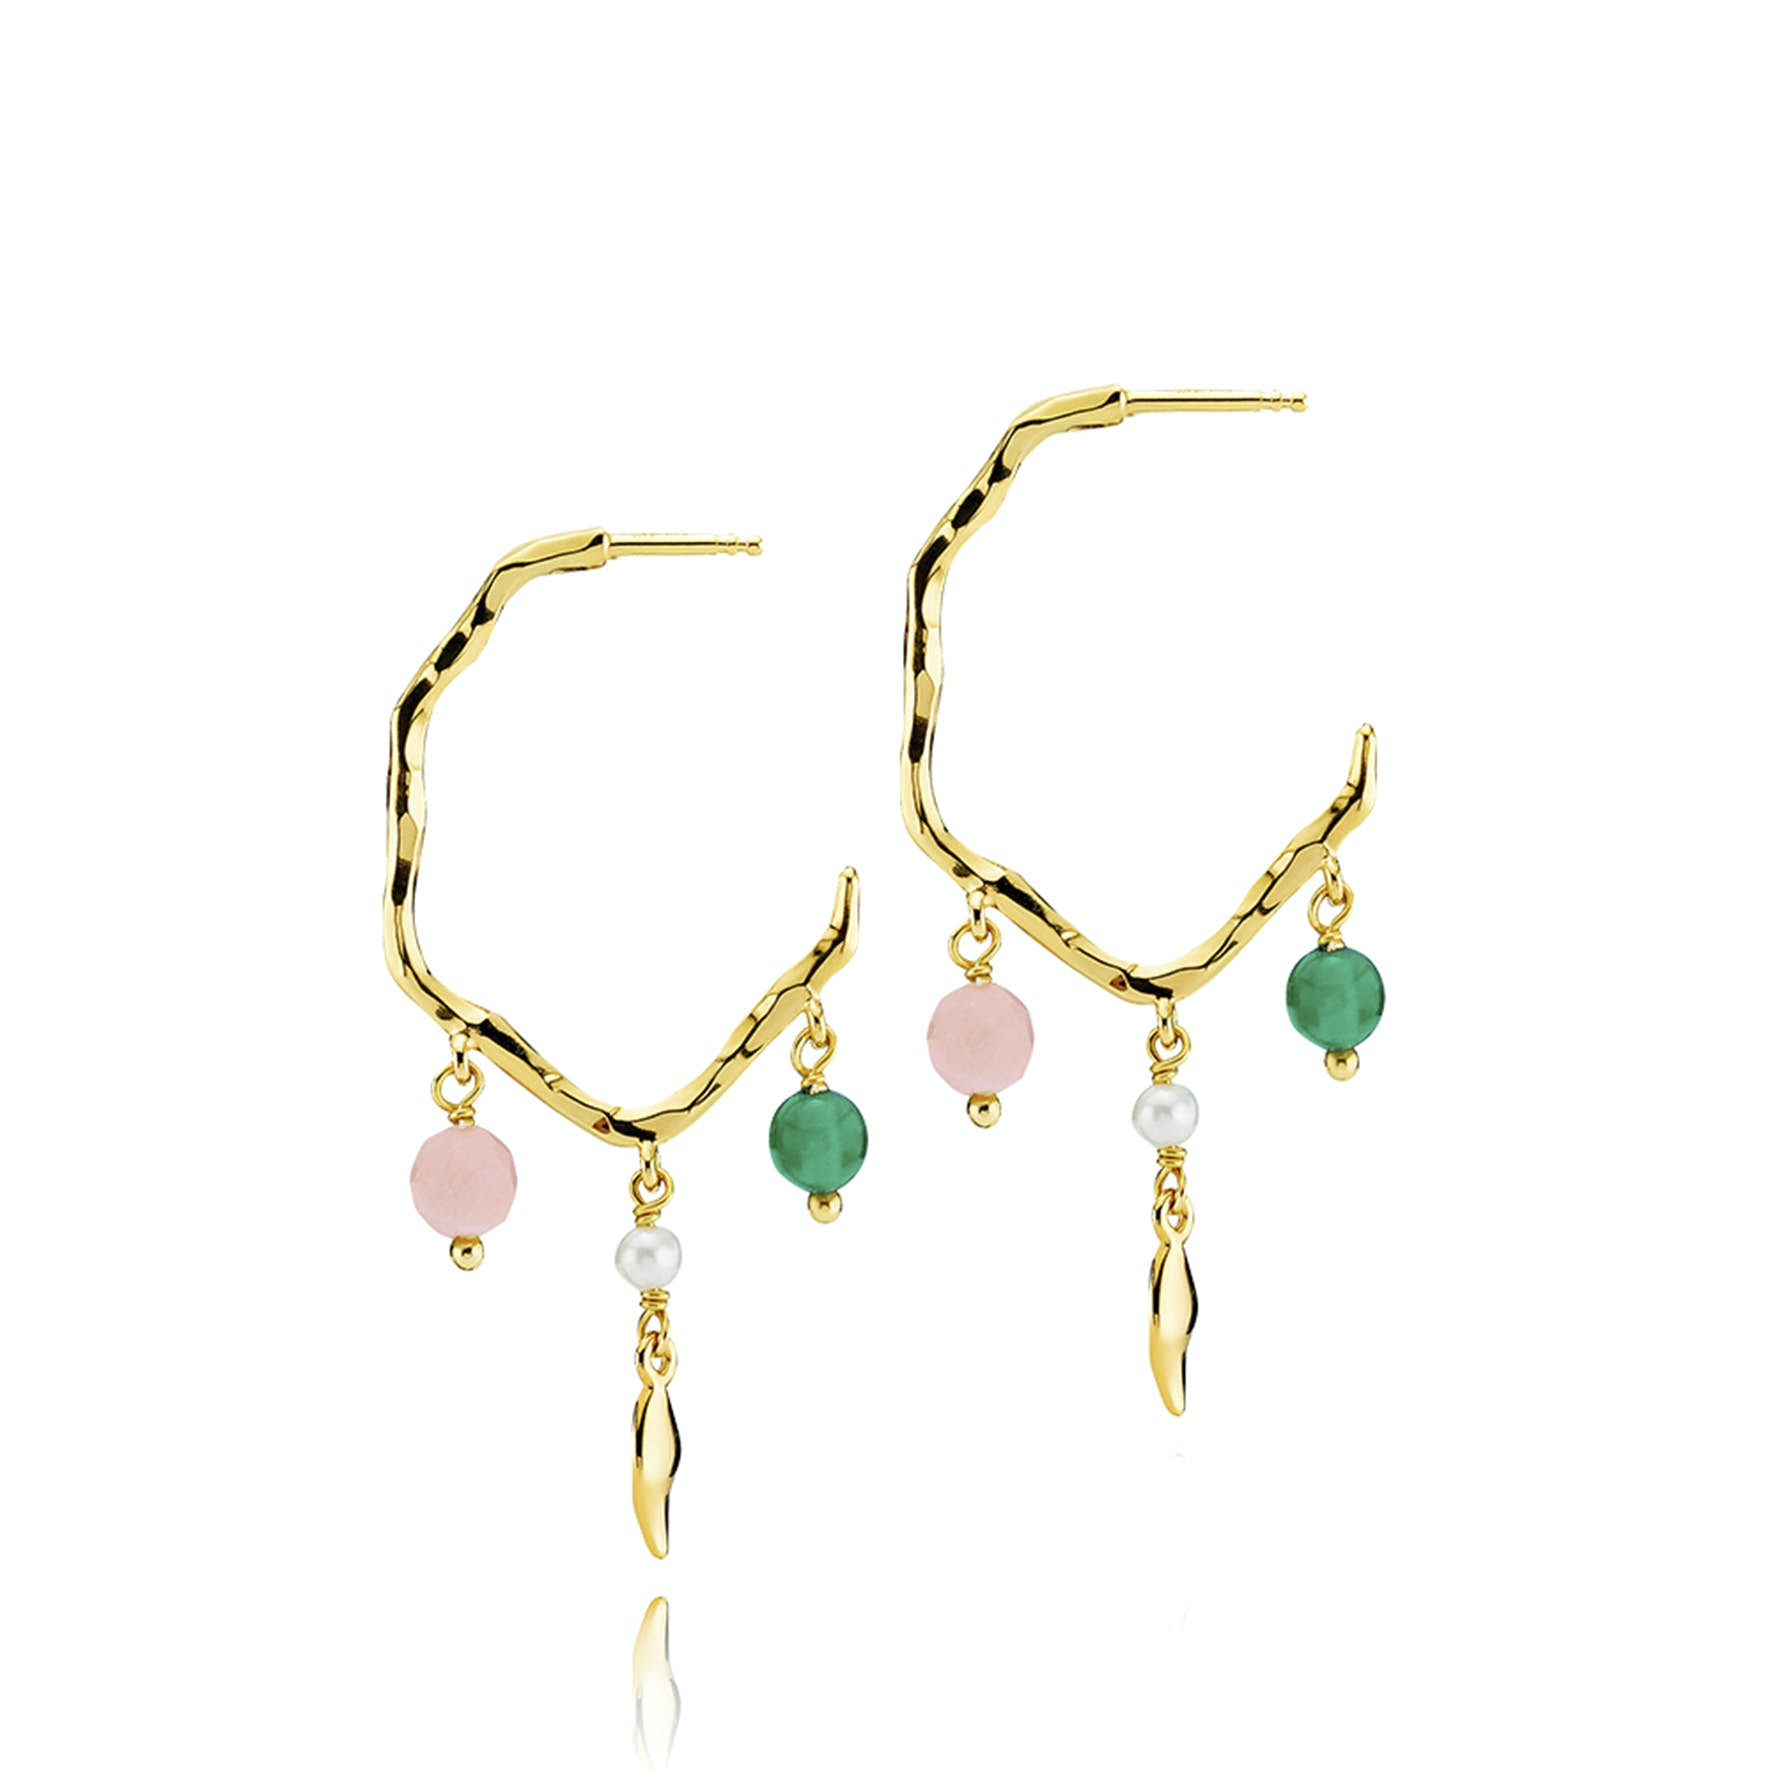 Mia by Sistie Pearl Creoles from Sistie in Goldplated-Silver Sterling 925